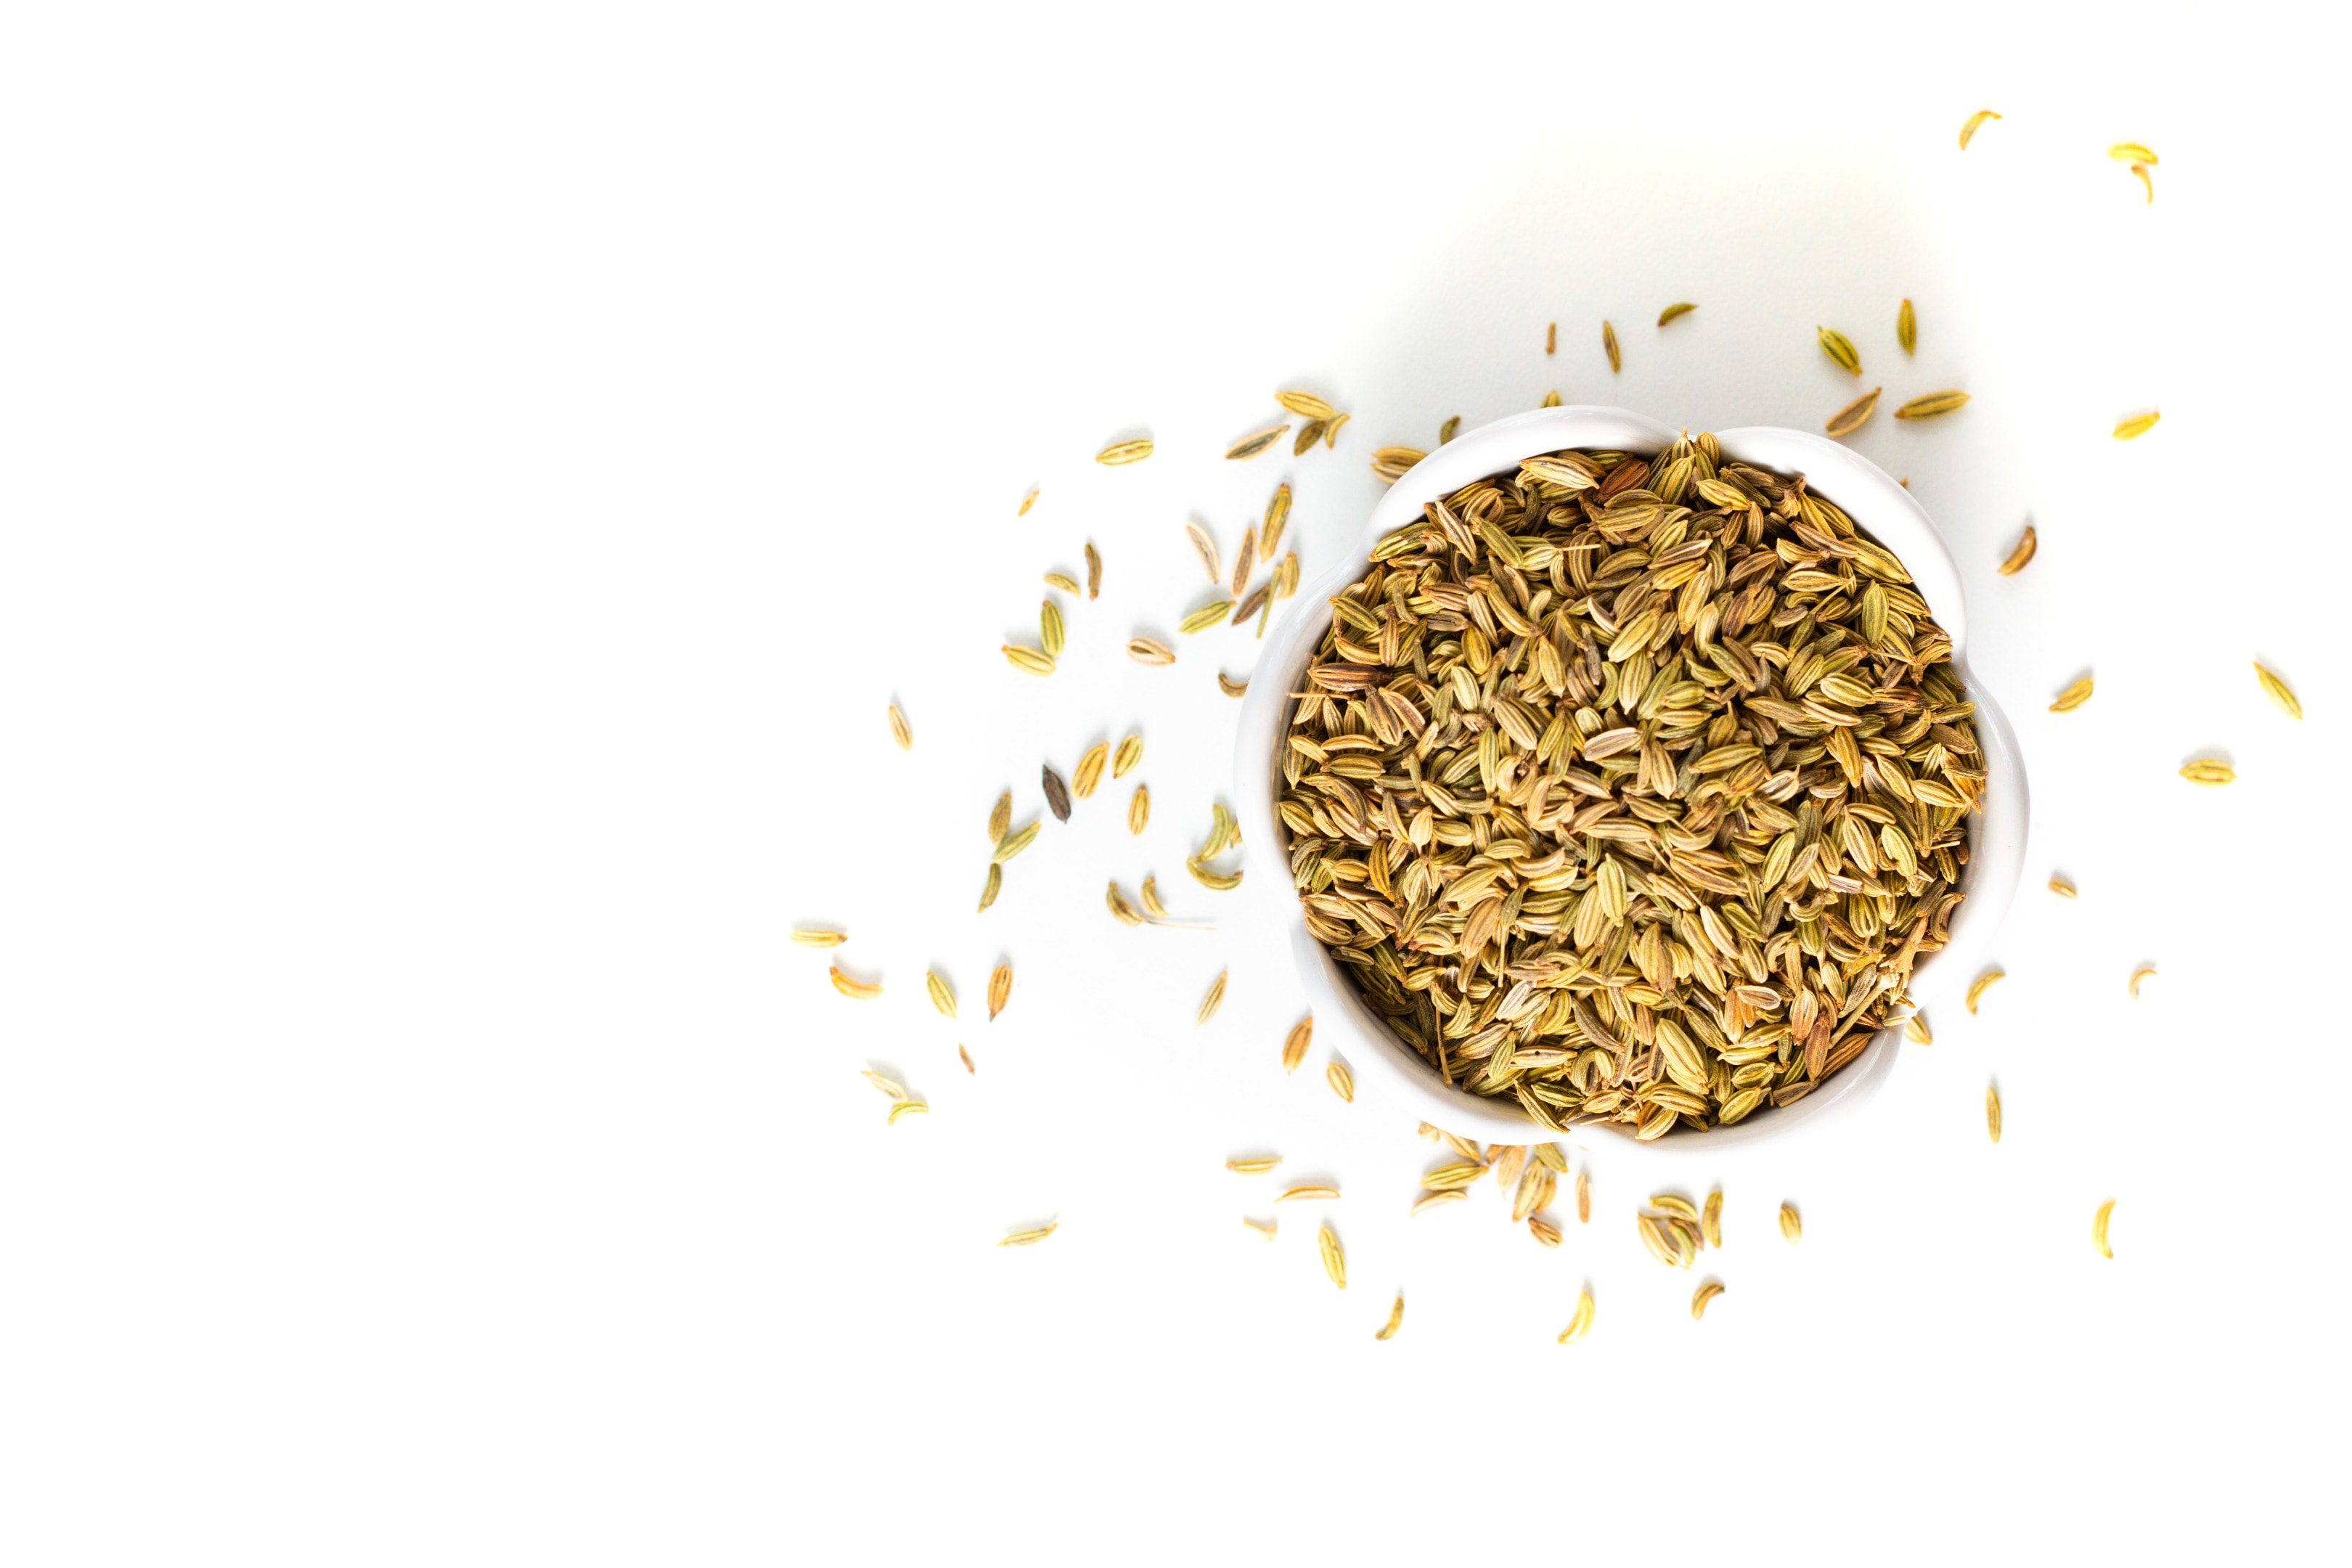 Fennel seeds on white background